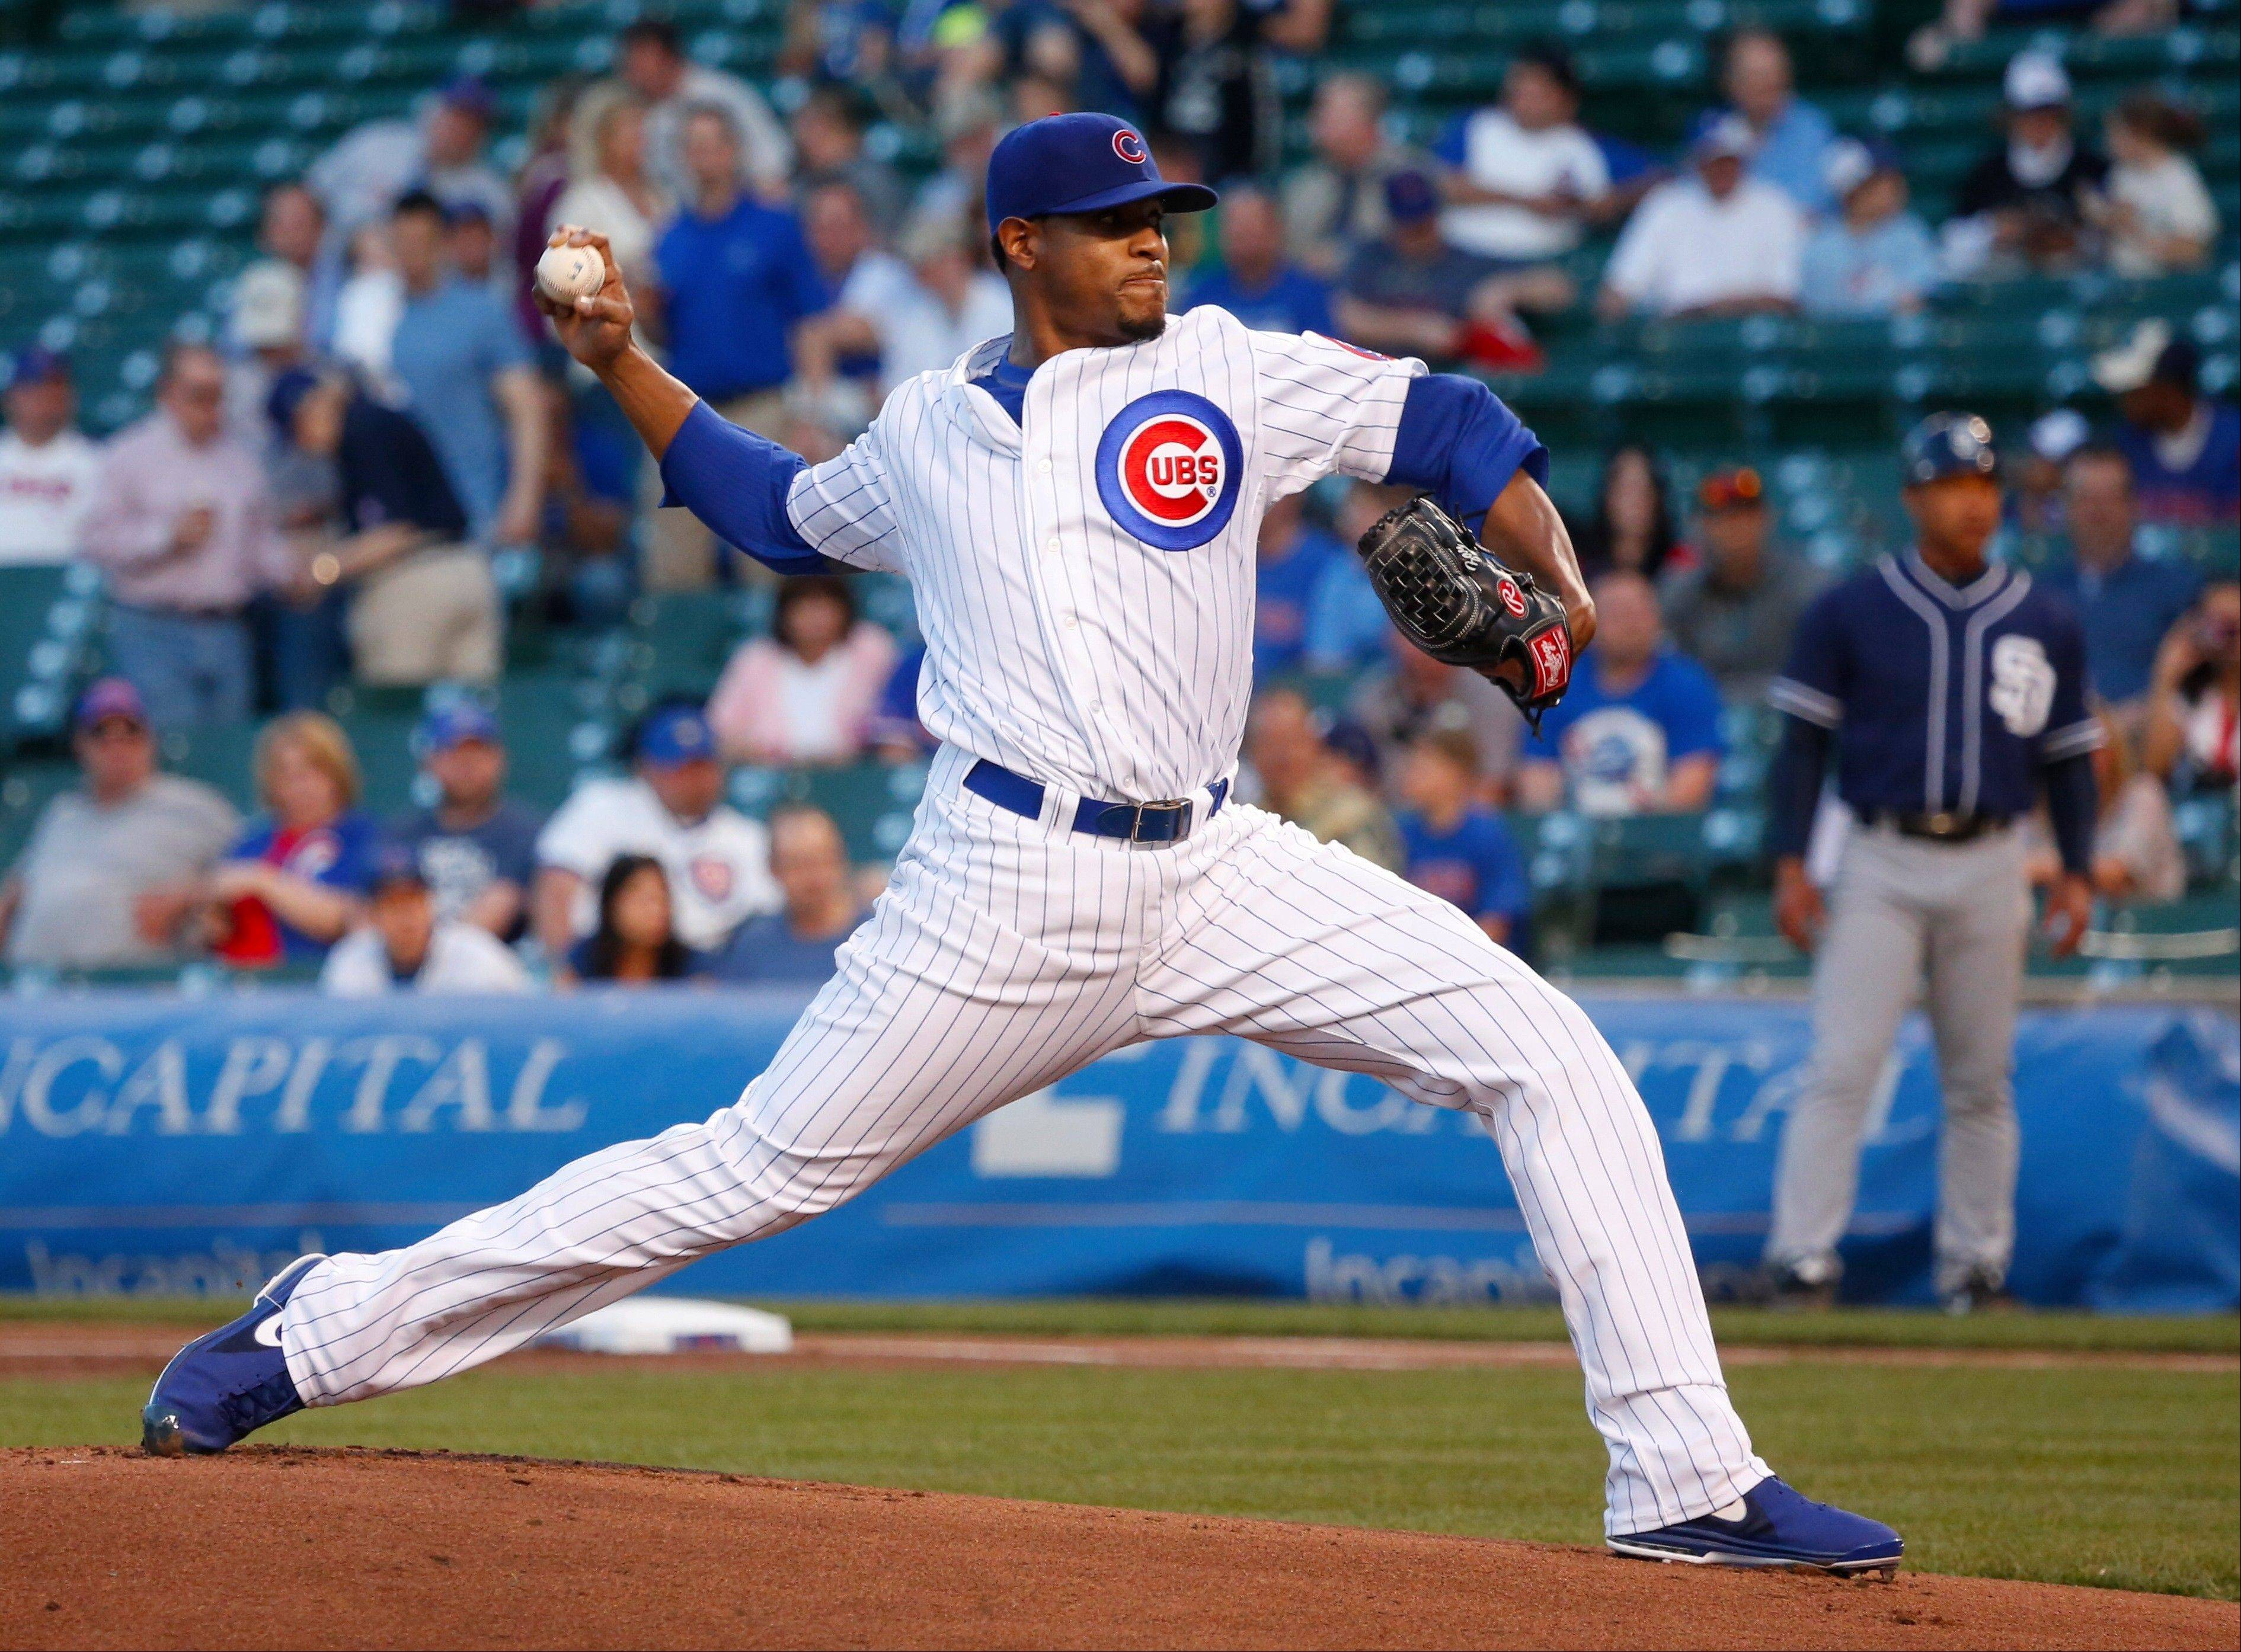 Chicago Cubs starting pitcher Edwin Jackson delivers during the first inning of a baseball game against the San Diego Padres, Tuesday, April 30, 2013, in Chicago.